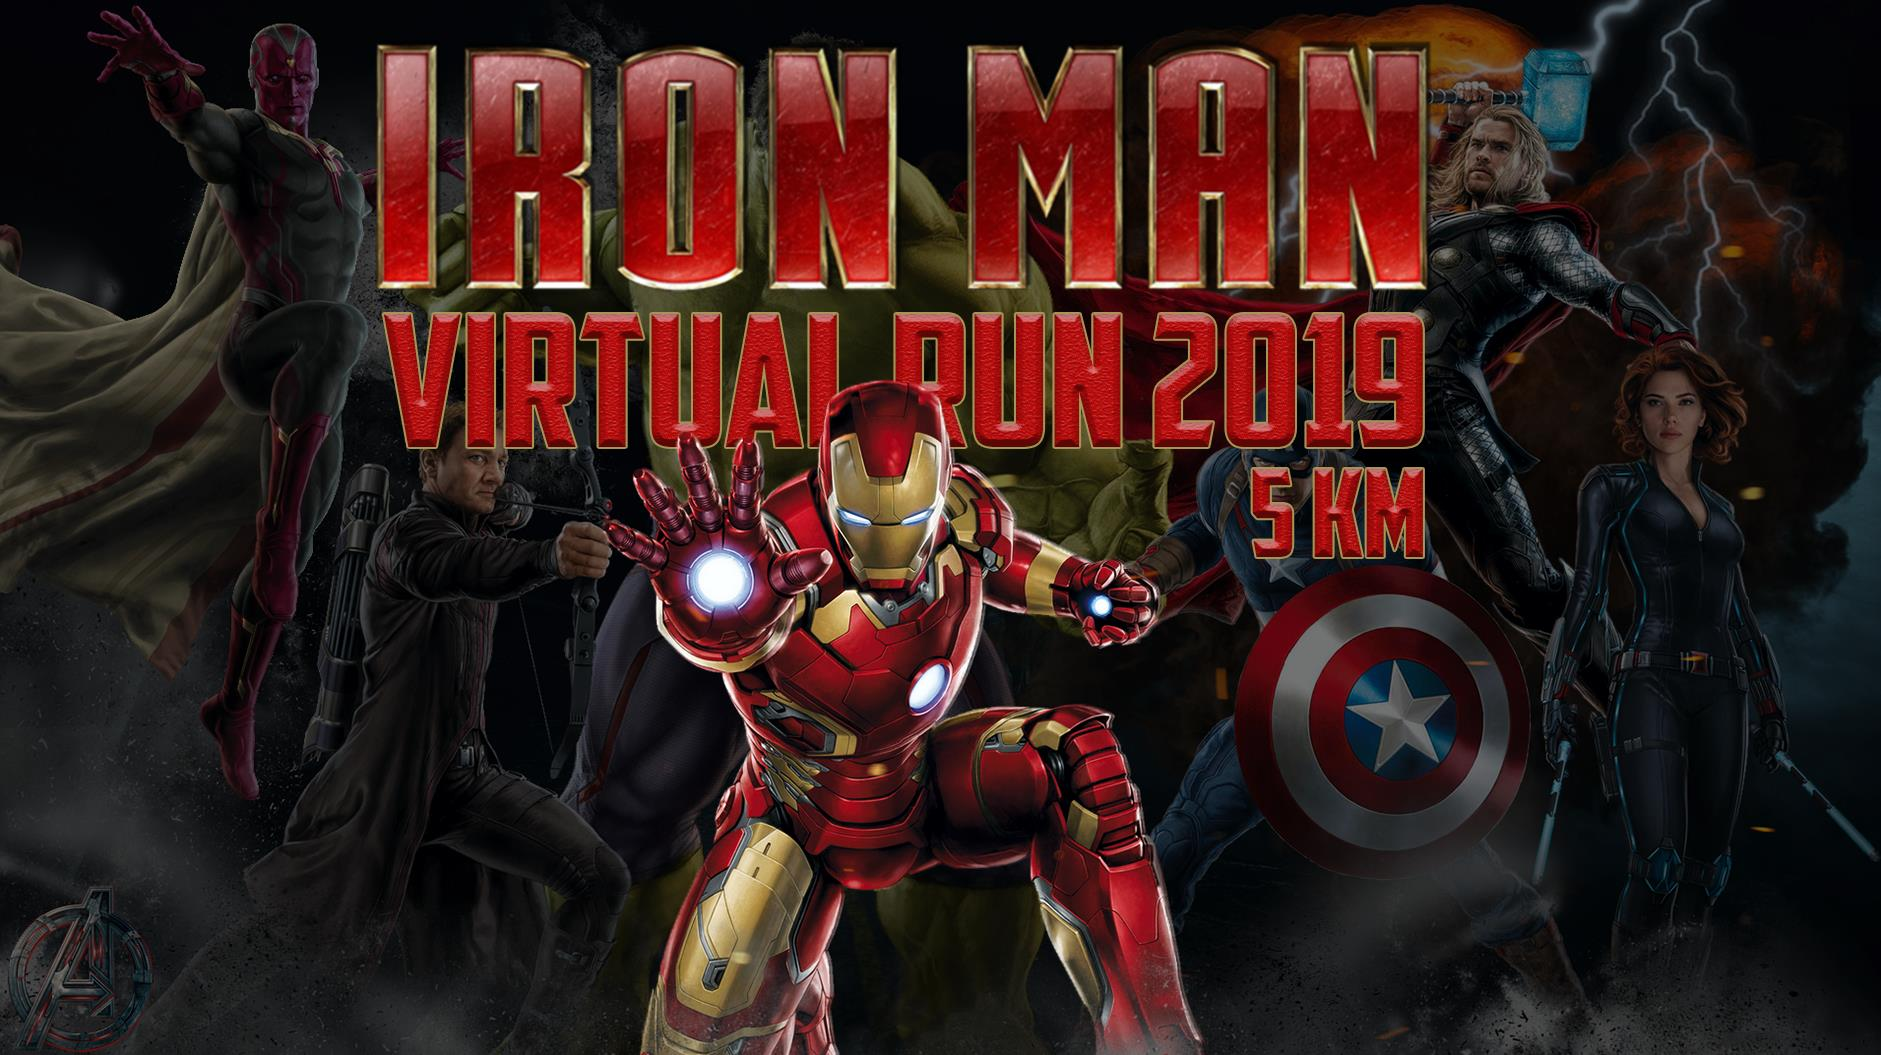 Logo of Ironman Virtual Run 2019